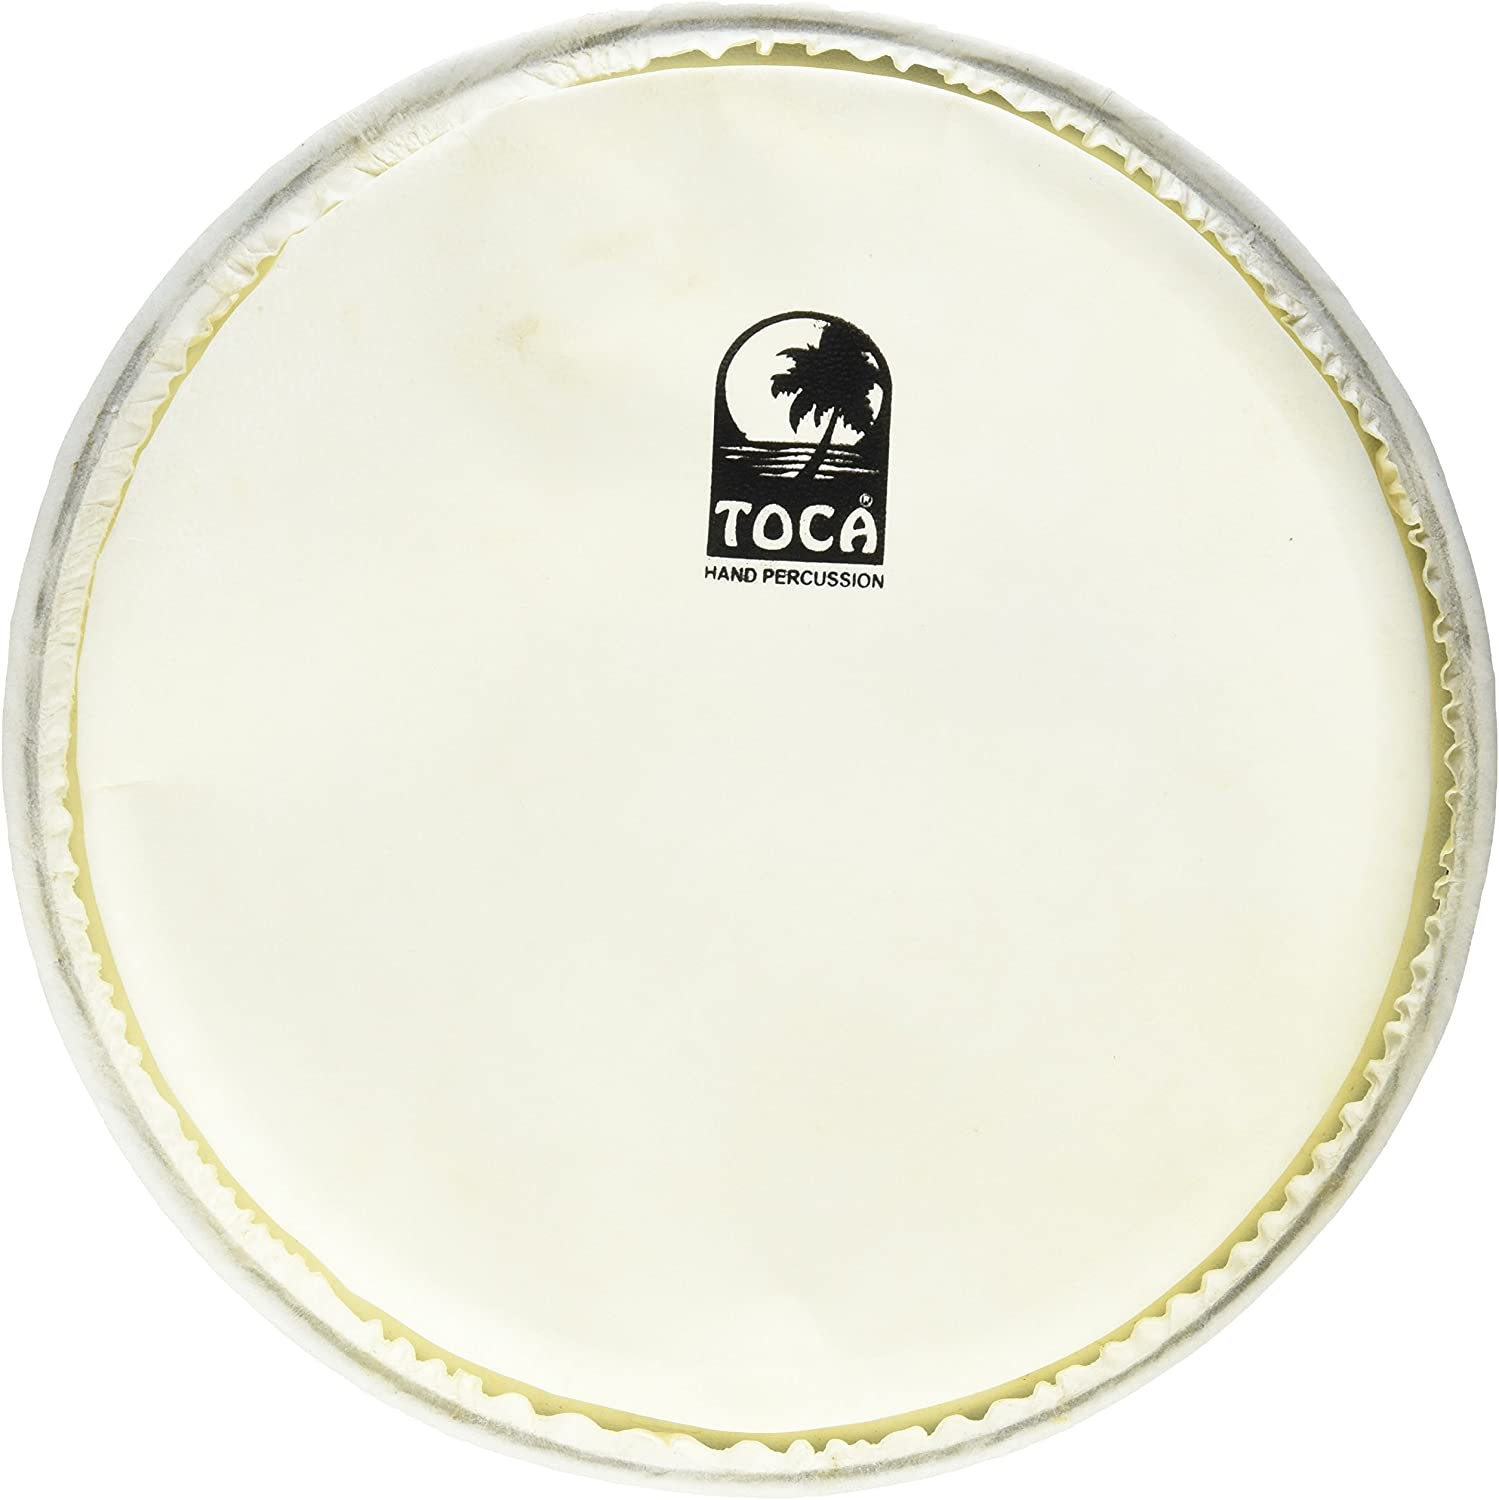 Toca TP-FHM10 Selling and selling 10-Inch Goat Skin Djem for Mechanically Tuned Head Max 56% OFF